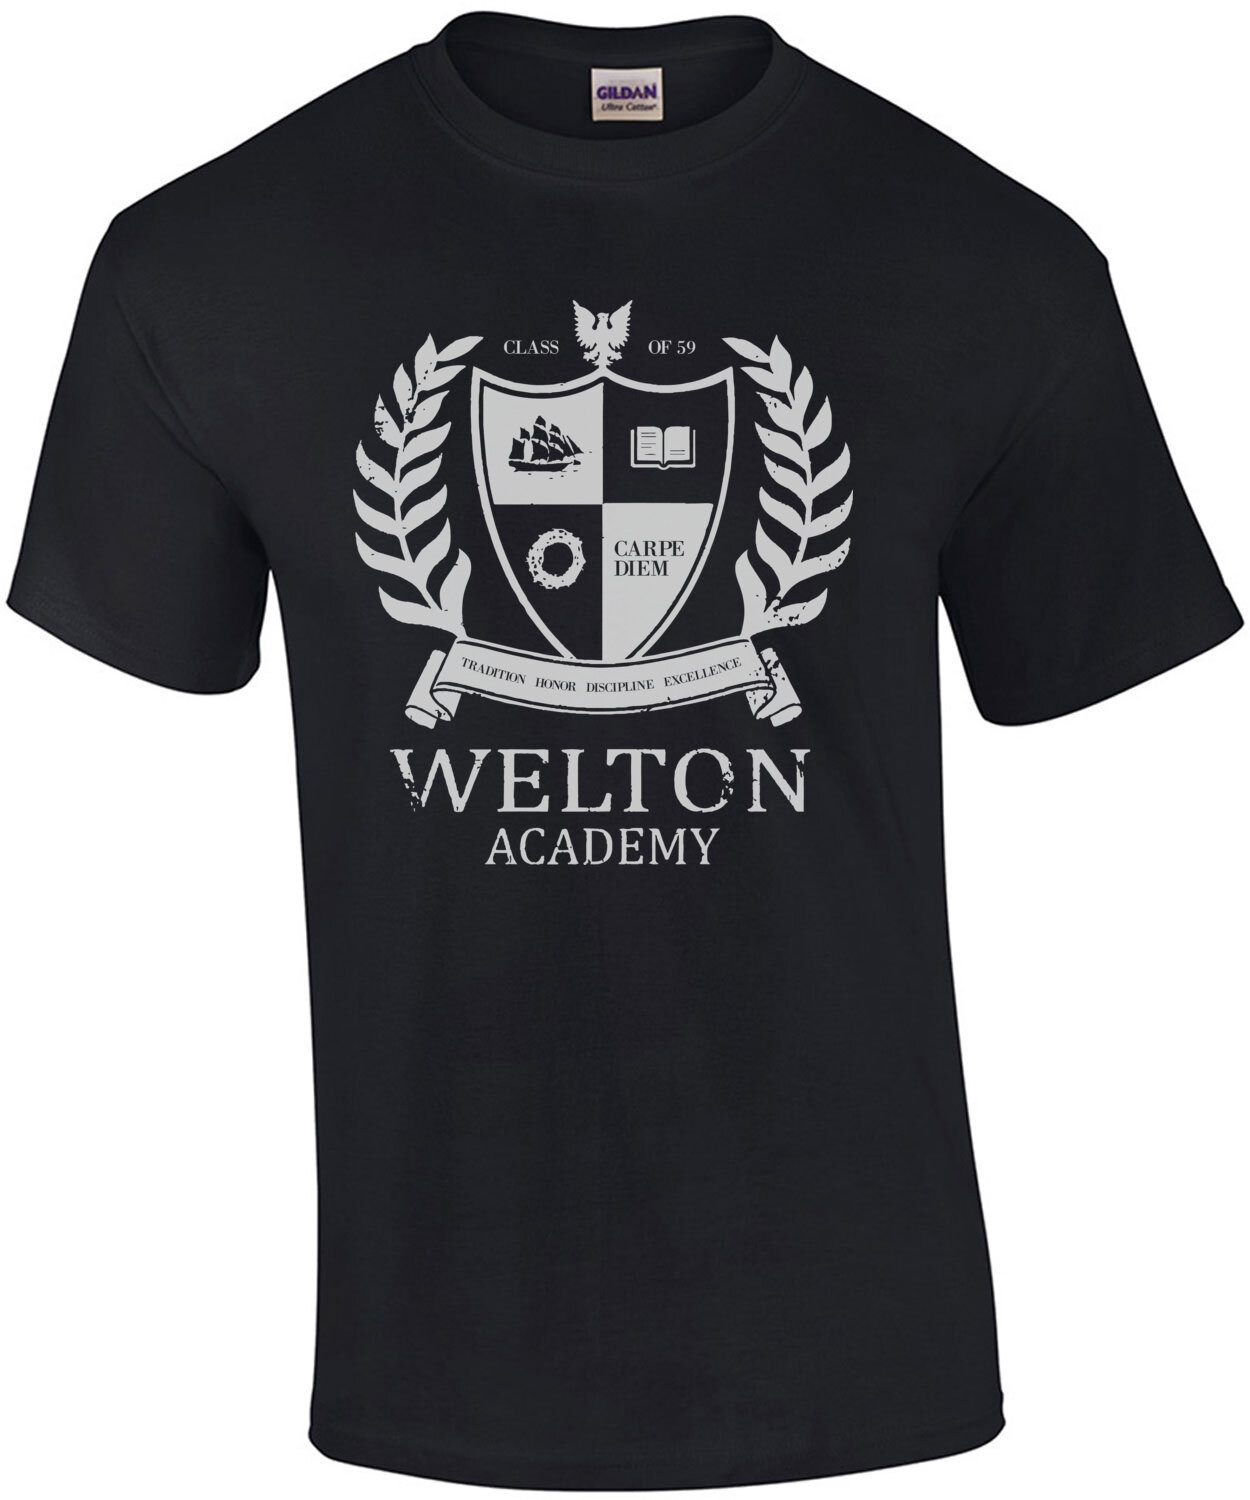 Welton Academy - Dead Poet's Society - 80's T-Shirt